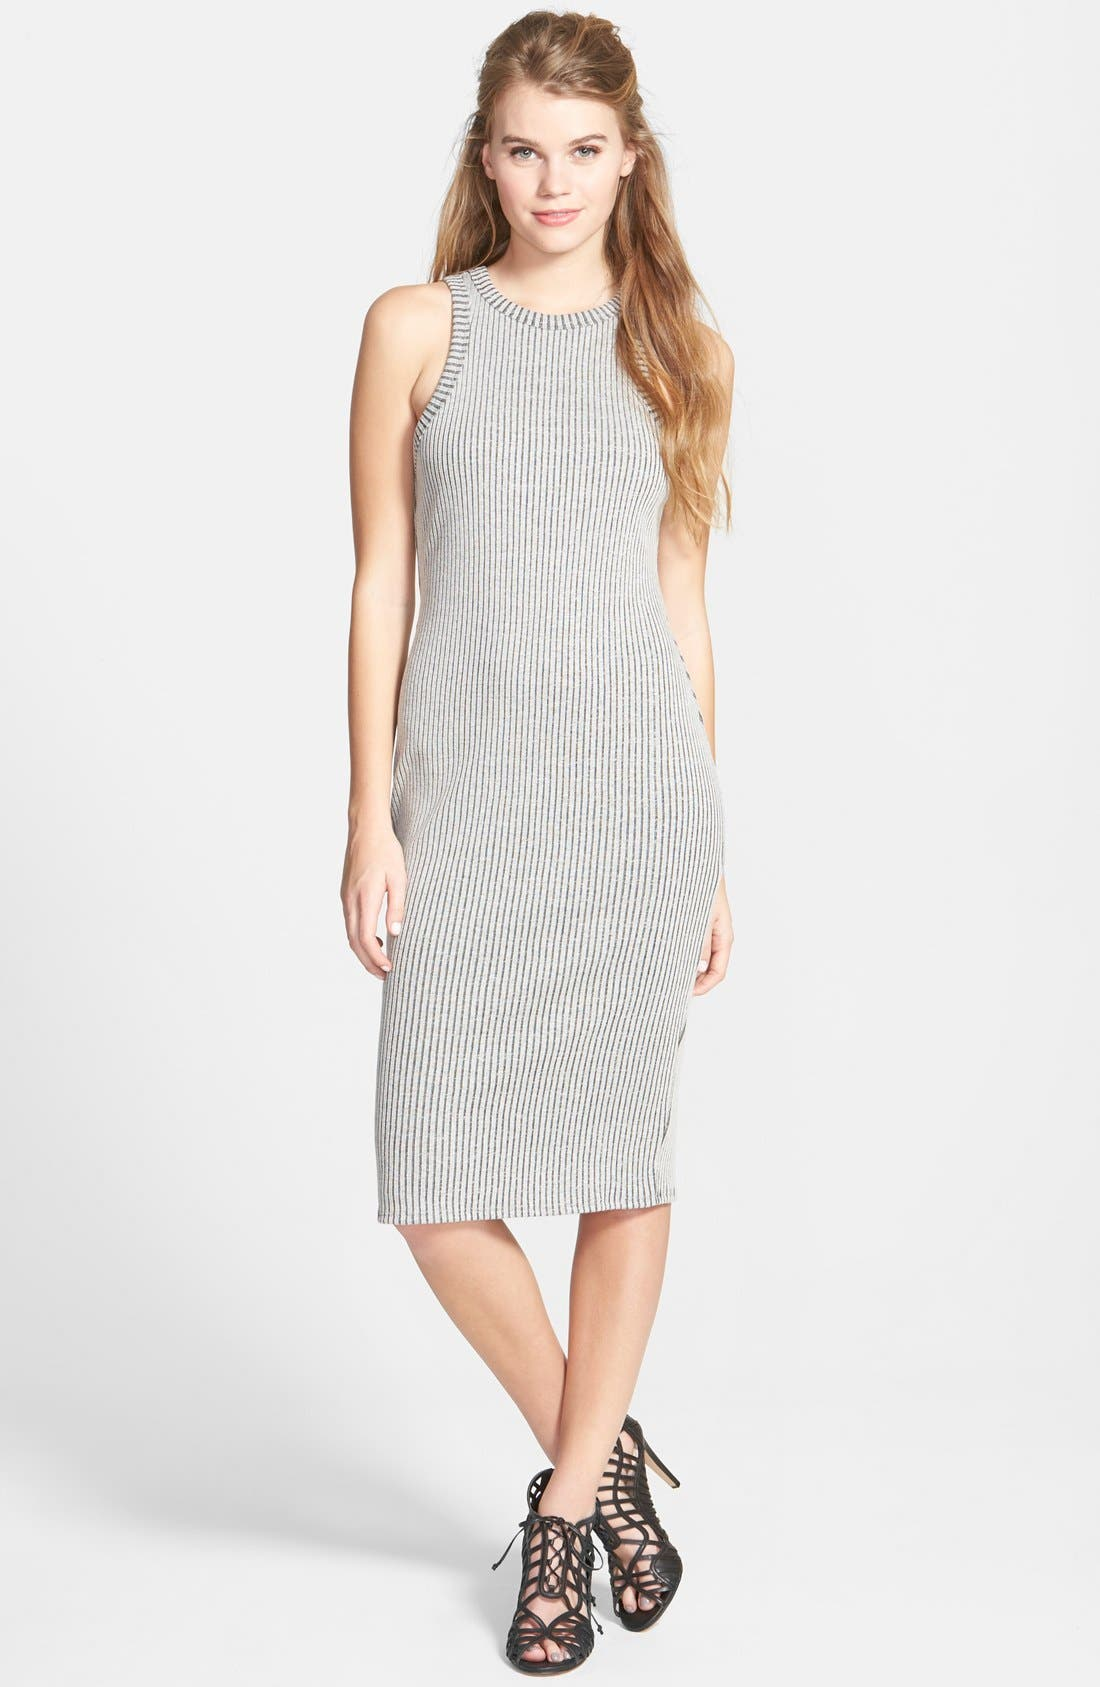 Main Image - One Clothing Rib Knit Body-Con Midi Dress (Juniors)